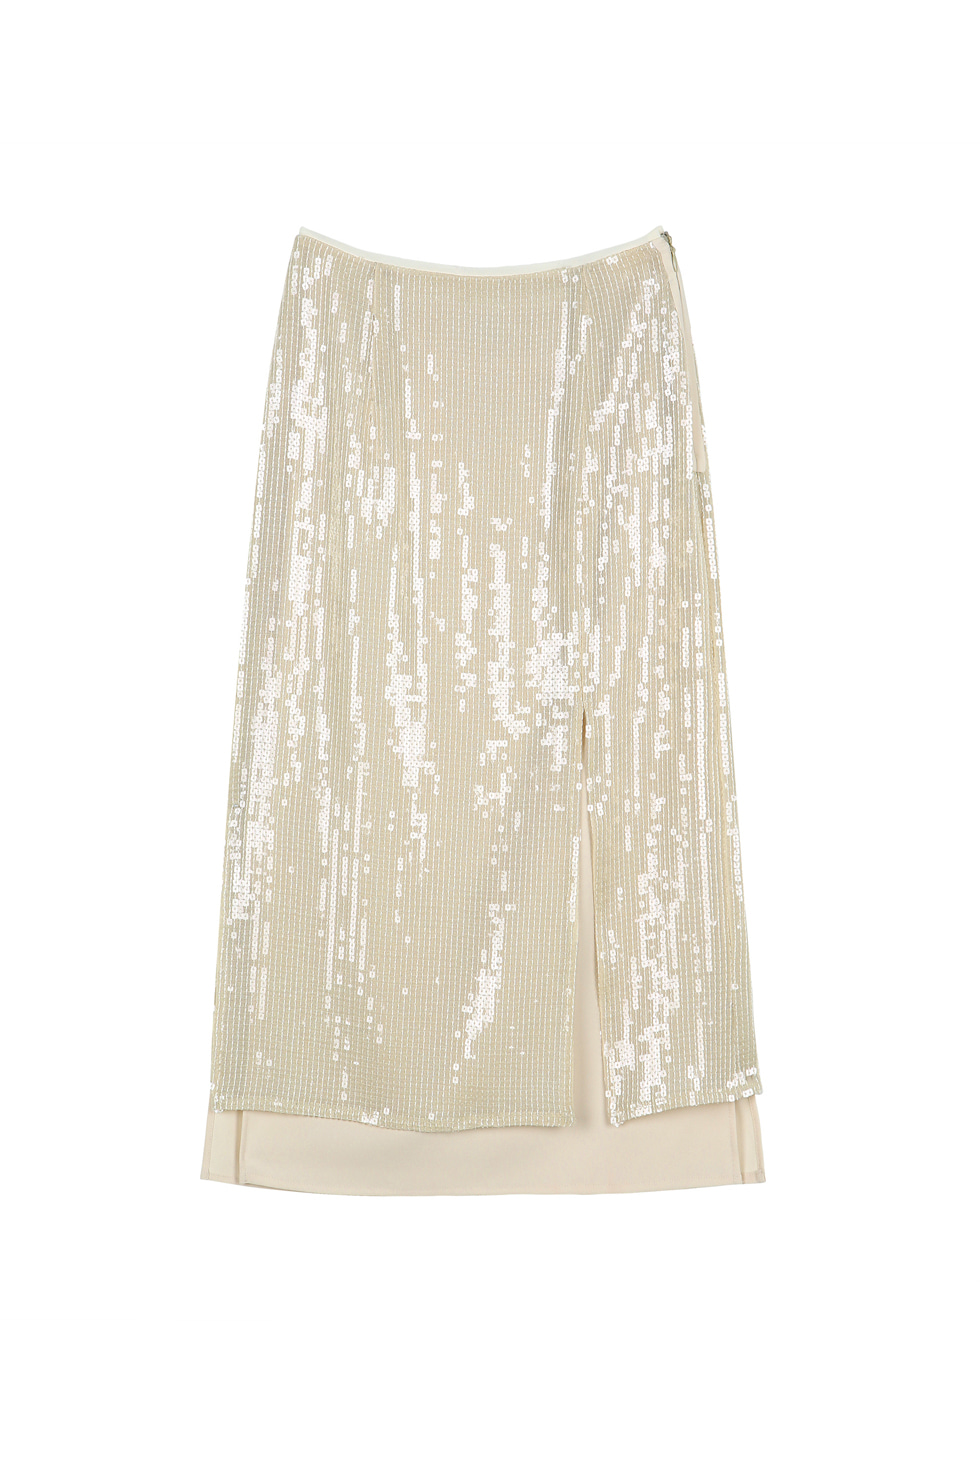 SEQUINED SLIT SKIRT - IVORY